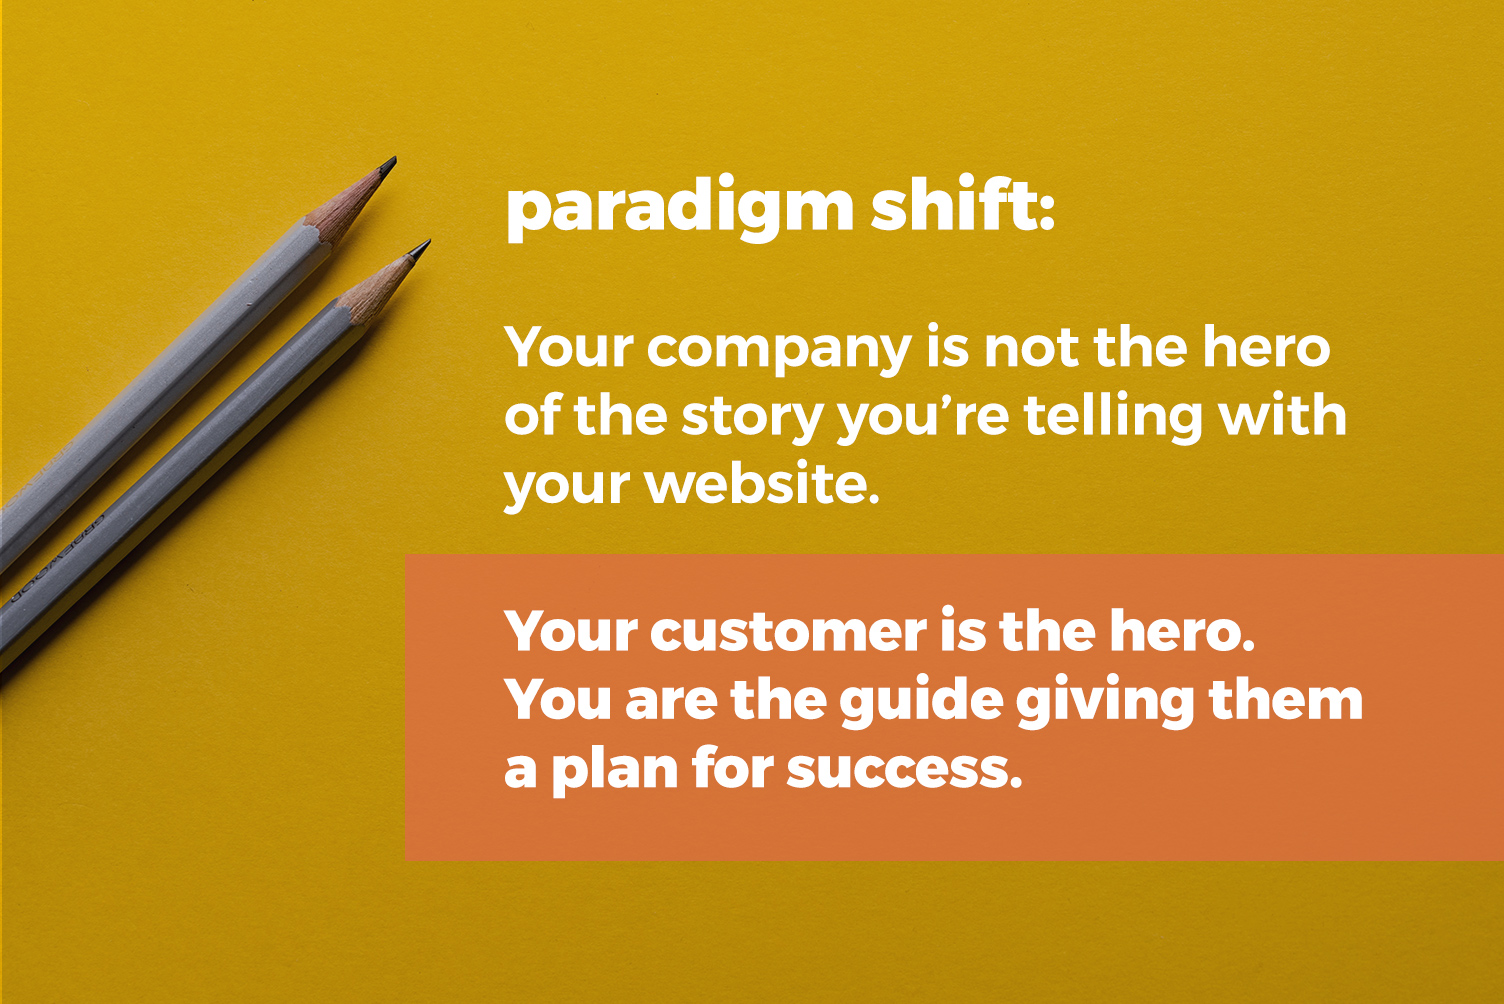 paradigm shift: your company is not the hero of the story your site is telling. your customer is the hero. you are the guide giving them a plan for success.